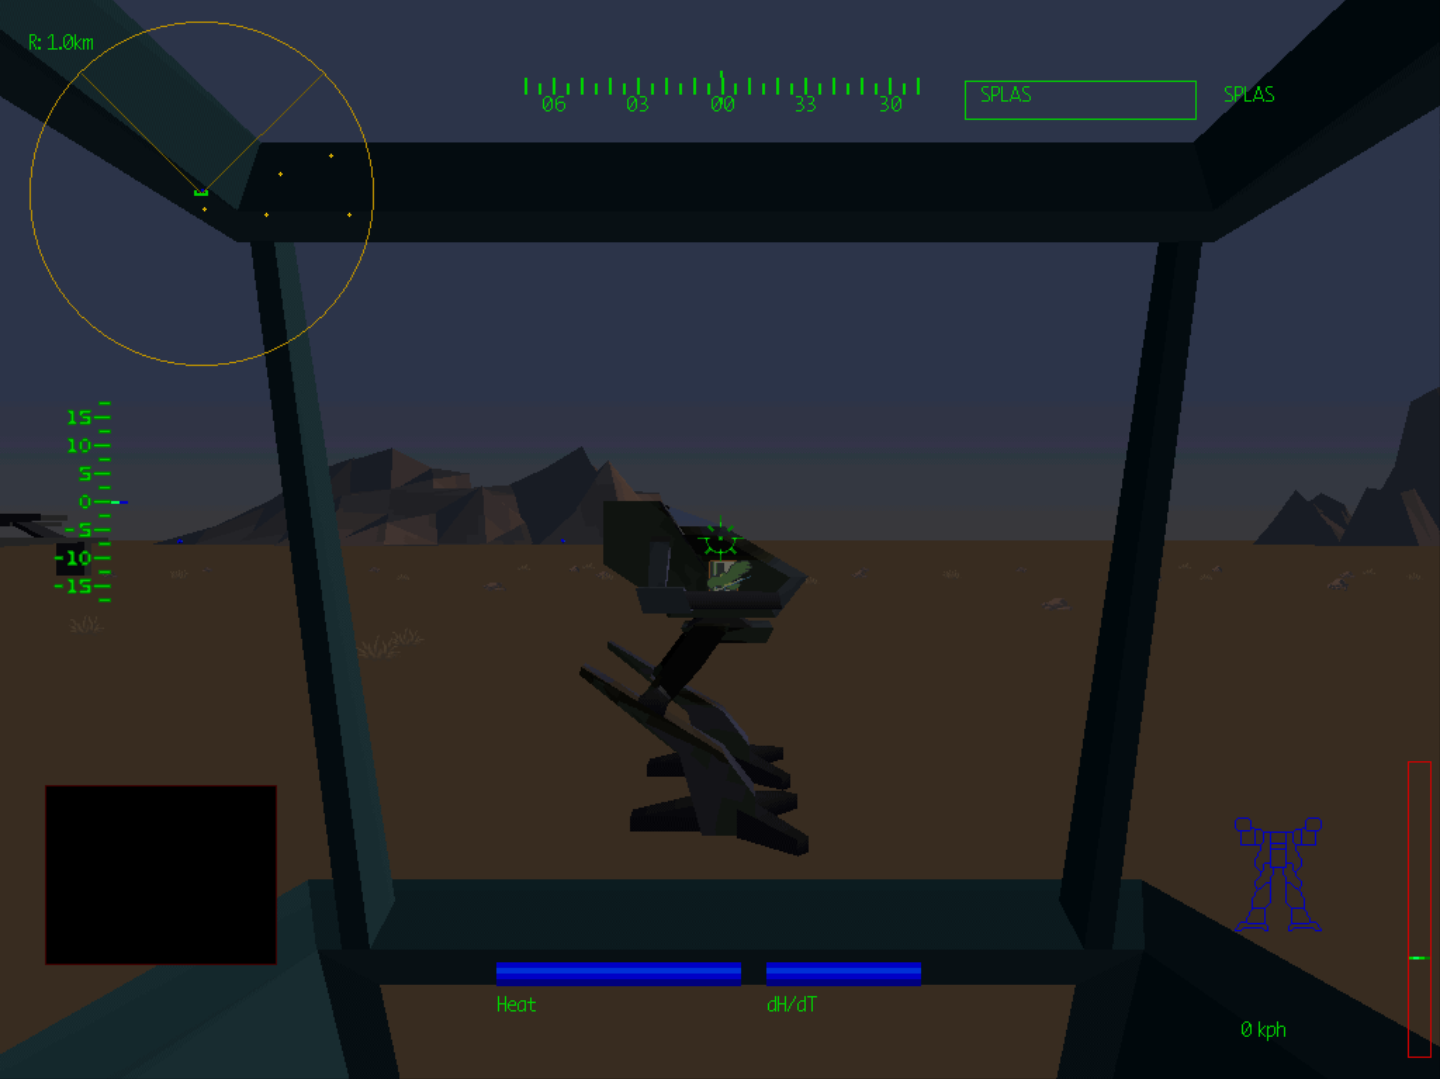 Figure 4 - Mech Warrior 2 with 1024x768 resolution